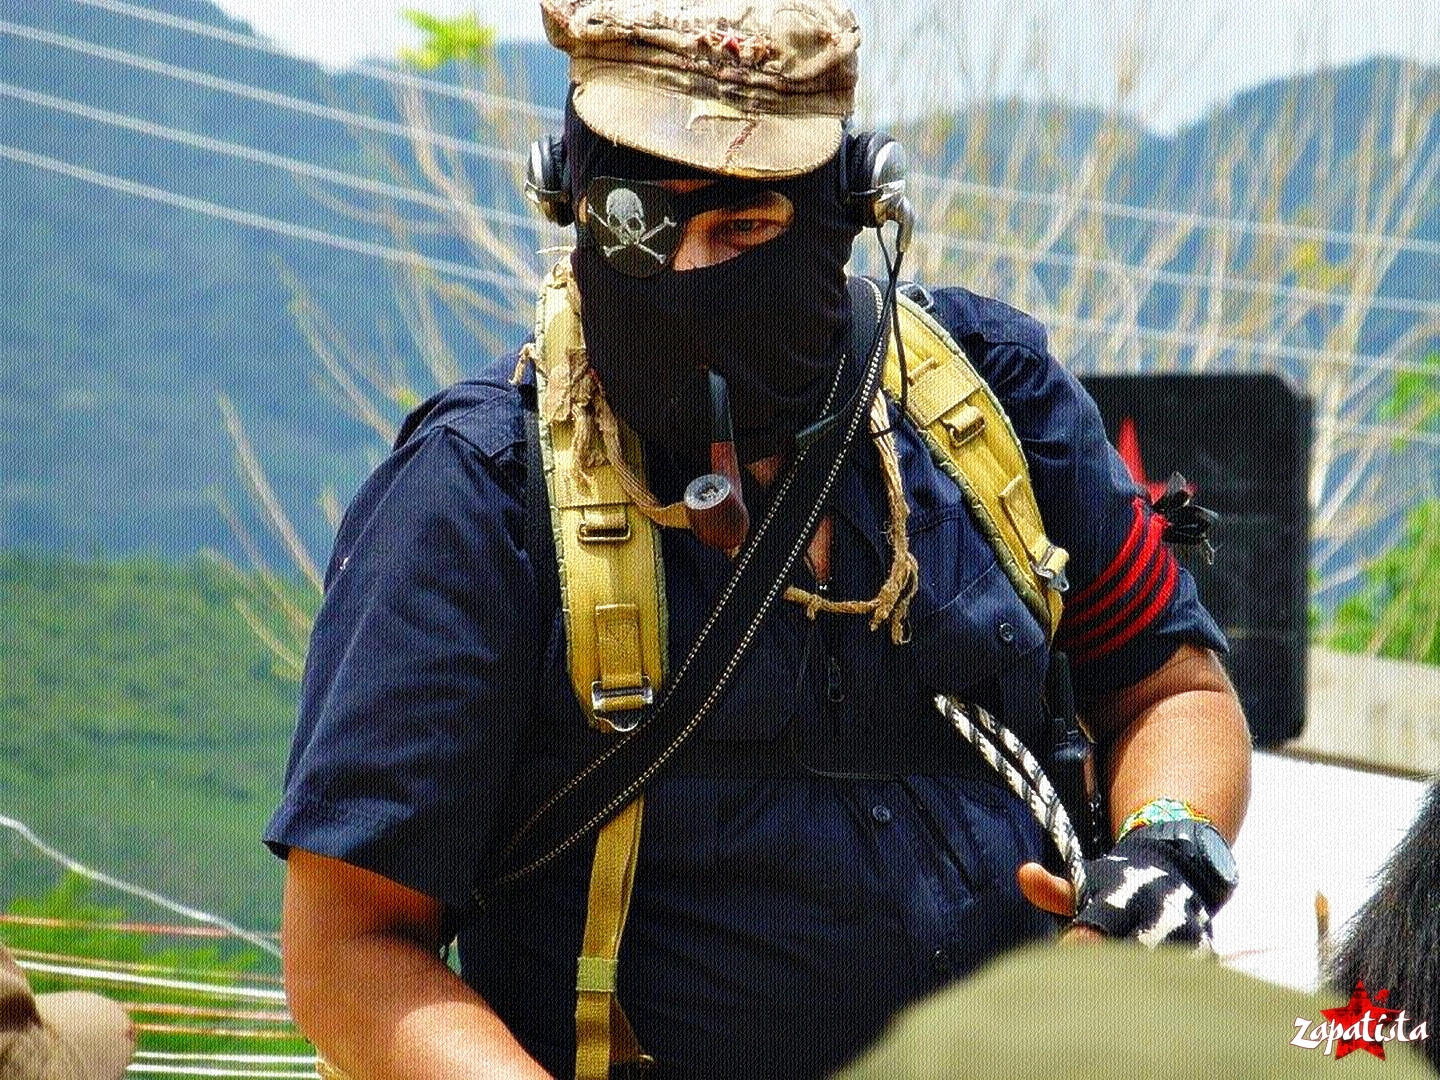 EZLN by Quadraro